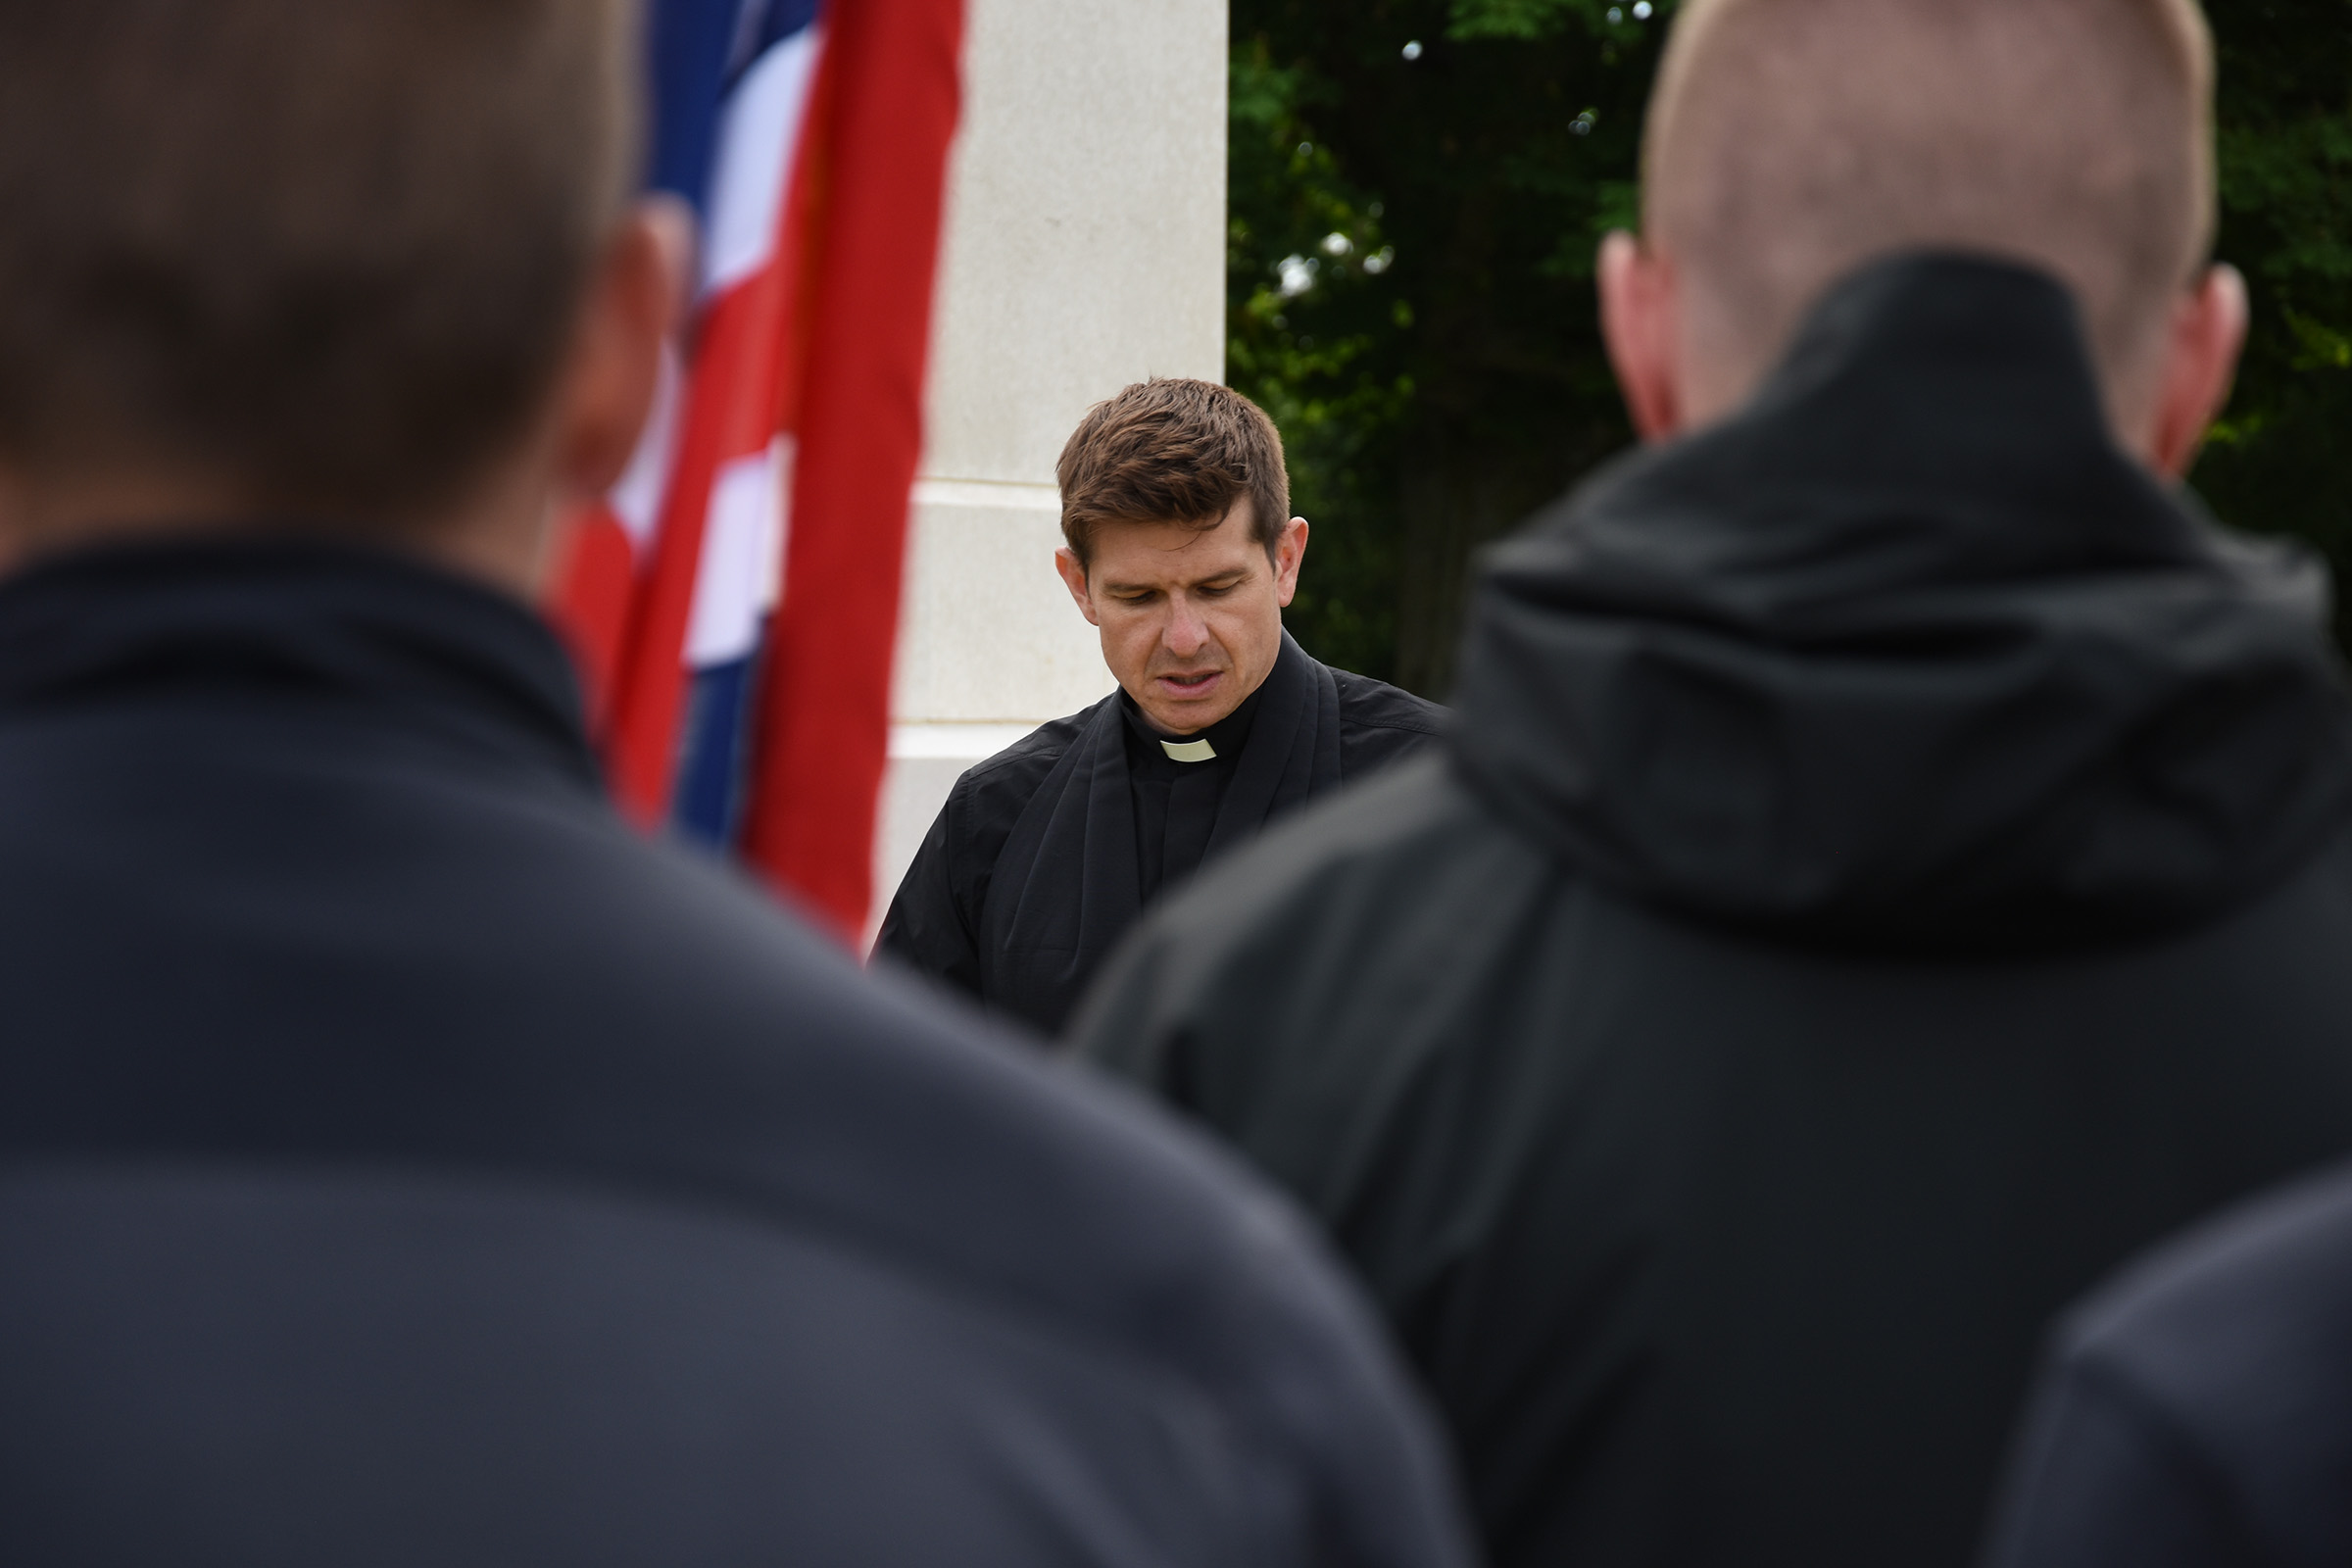 Rev. Ben Norton , Chaplain of 4th Battalion, The Yorkshire Regiment, at the Act of Remembrance at Bayeux War Cemetery